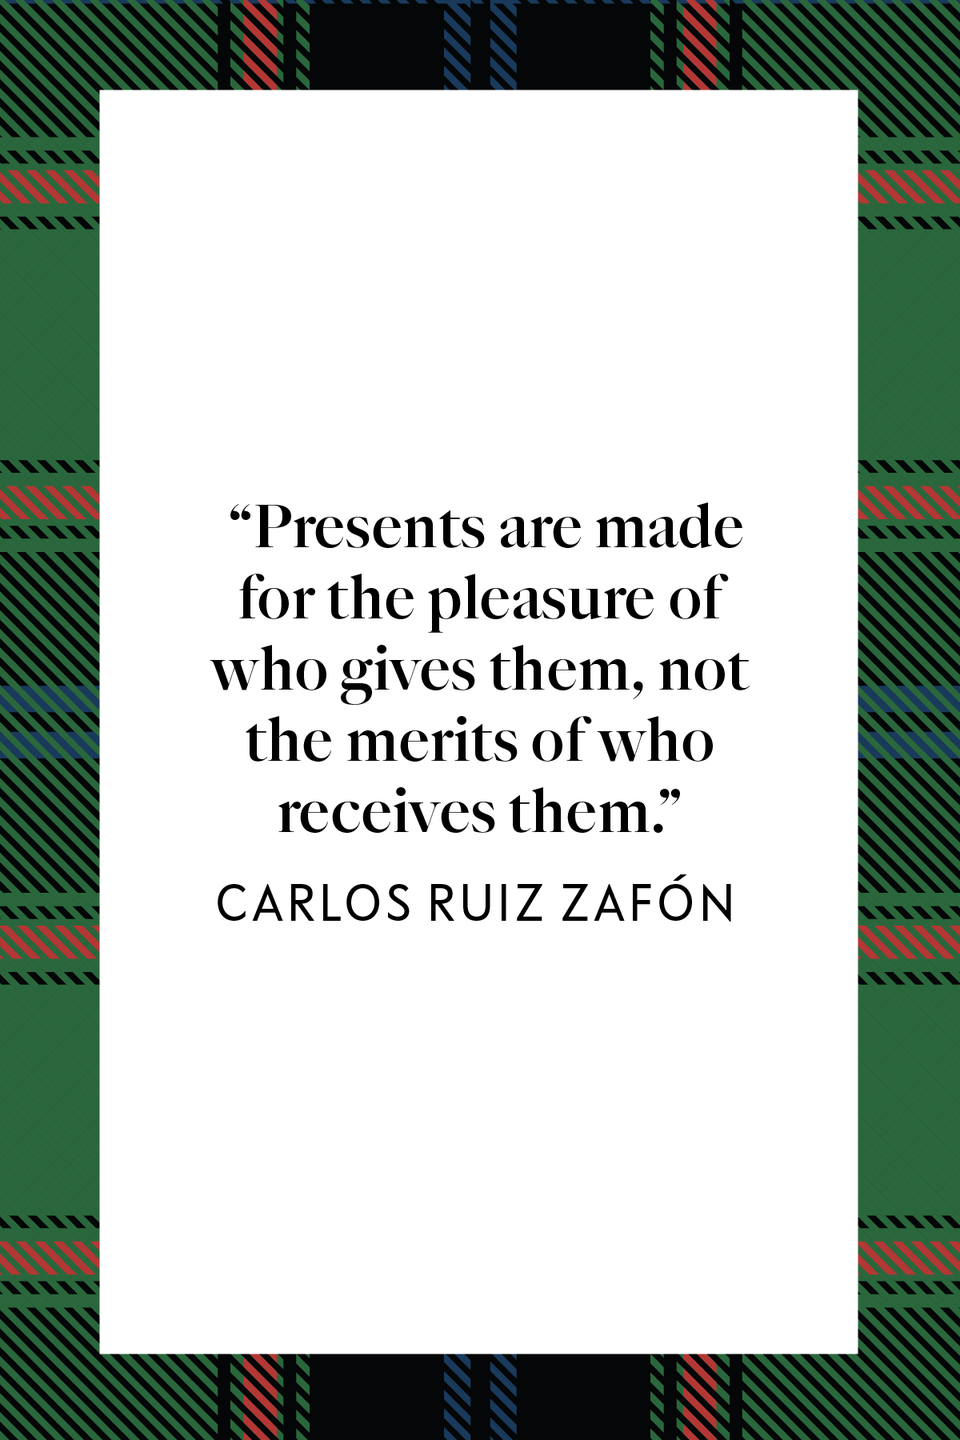 "<p>Novelist Carlos Ruiz Zafón wrote ""Presents are made for the pleasure of who gives them, not the merits of who receives them"" in the <em>New York Times</em> bestseller <em><a href=""https://www.amazon.com/Shadow-Wind-Carlos-Ruiz-Zaf%C3%B3n/dp/0143034901?tag=syn-yahoo-20&ascsubtag=%5Bartid%7C10072.g.34536312%5Bsrc%7Cyahoo-us"" rel=""nofollow noopener"" target=""_blank"" data-ylk=""slk:The Shadow of the Wind"" class=""link rapid-noclick-resp"">The Shadow of the Wind</a>.</em></p>"